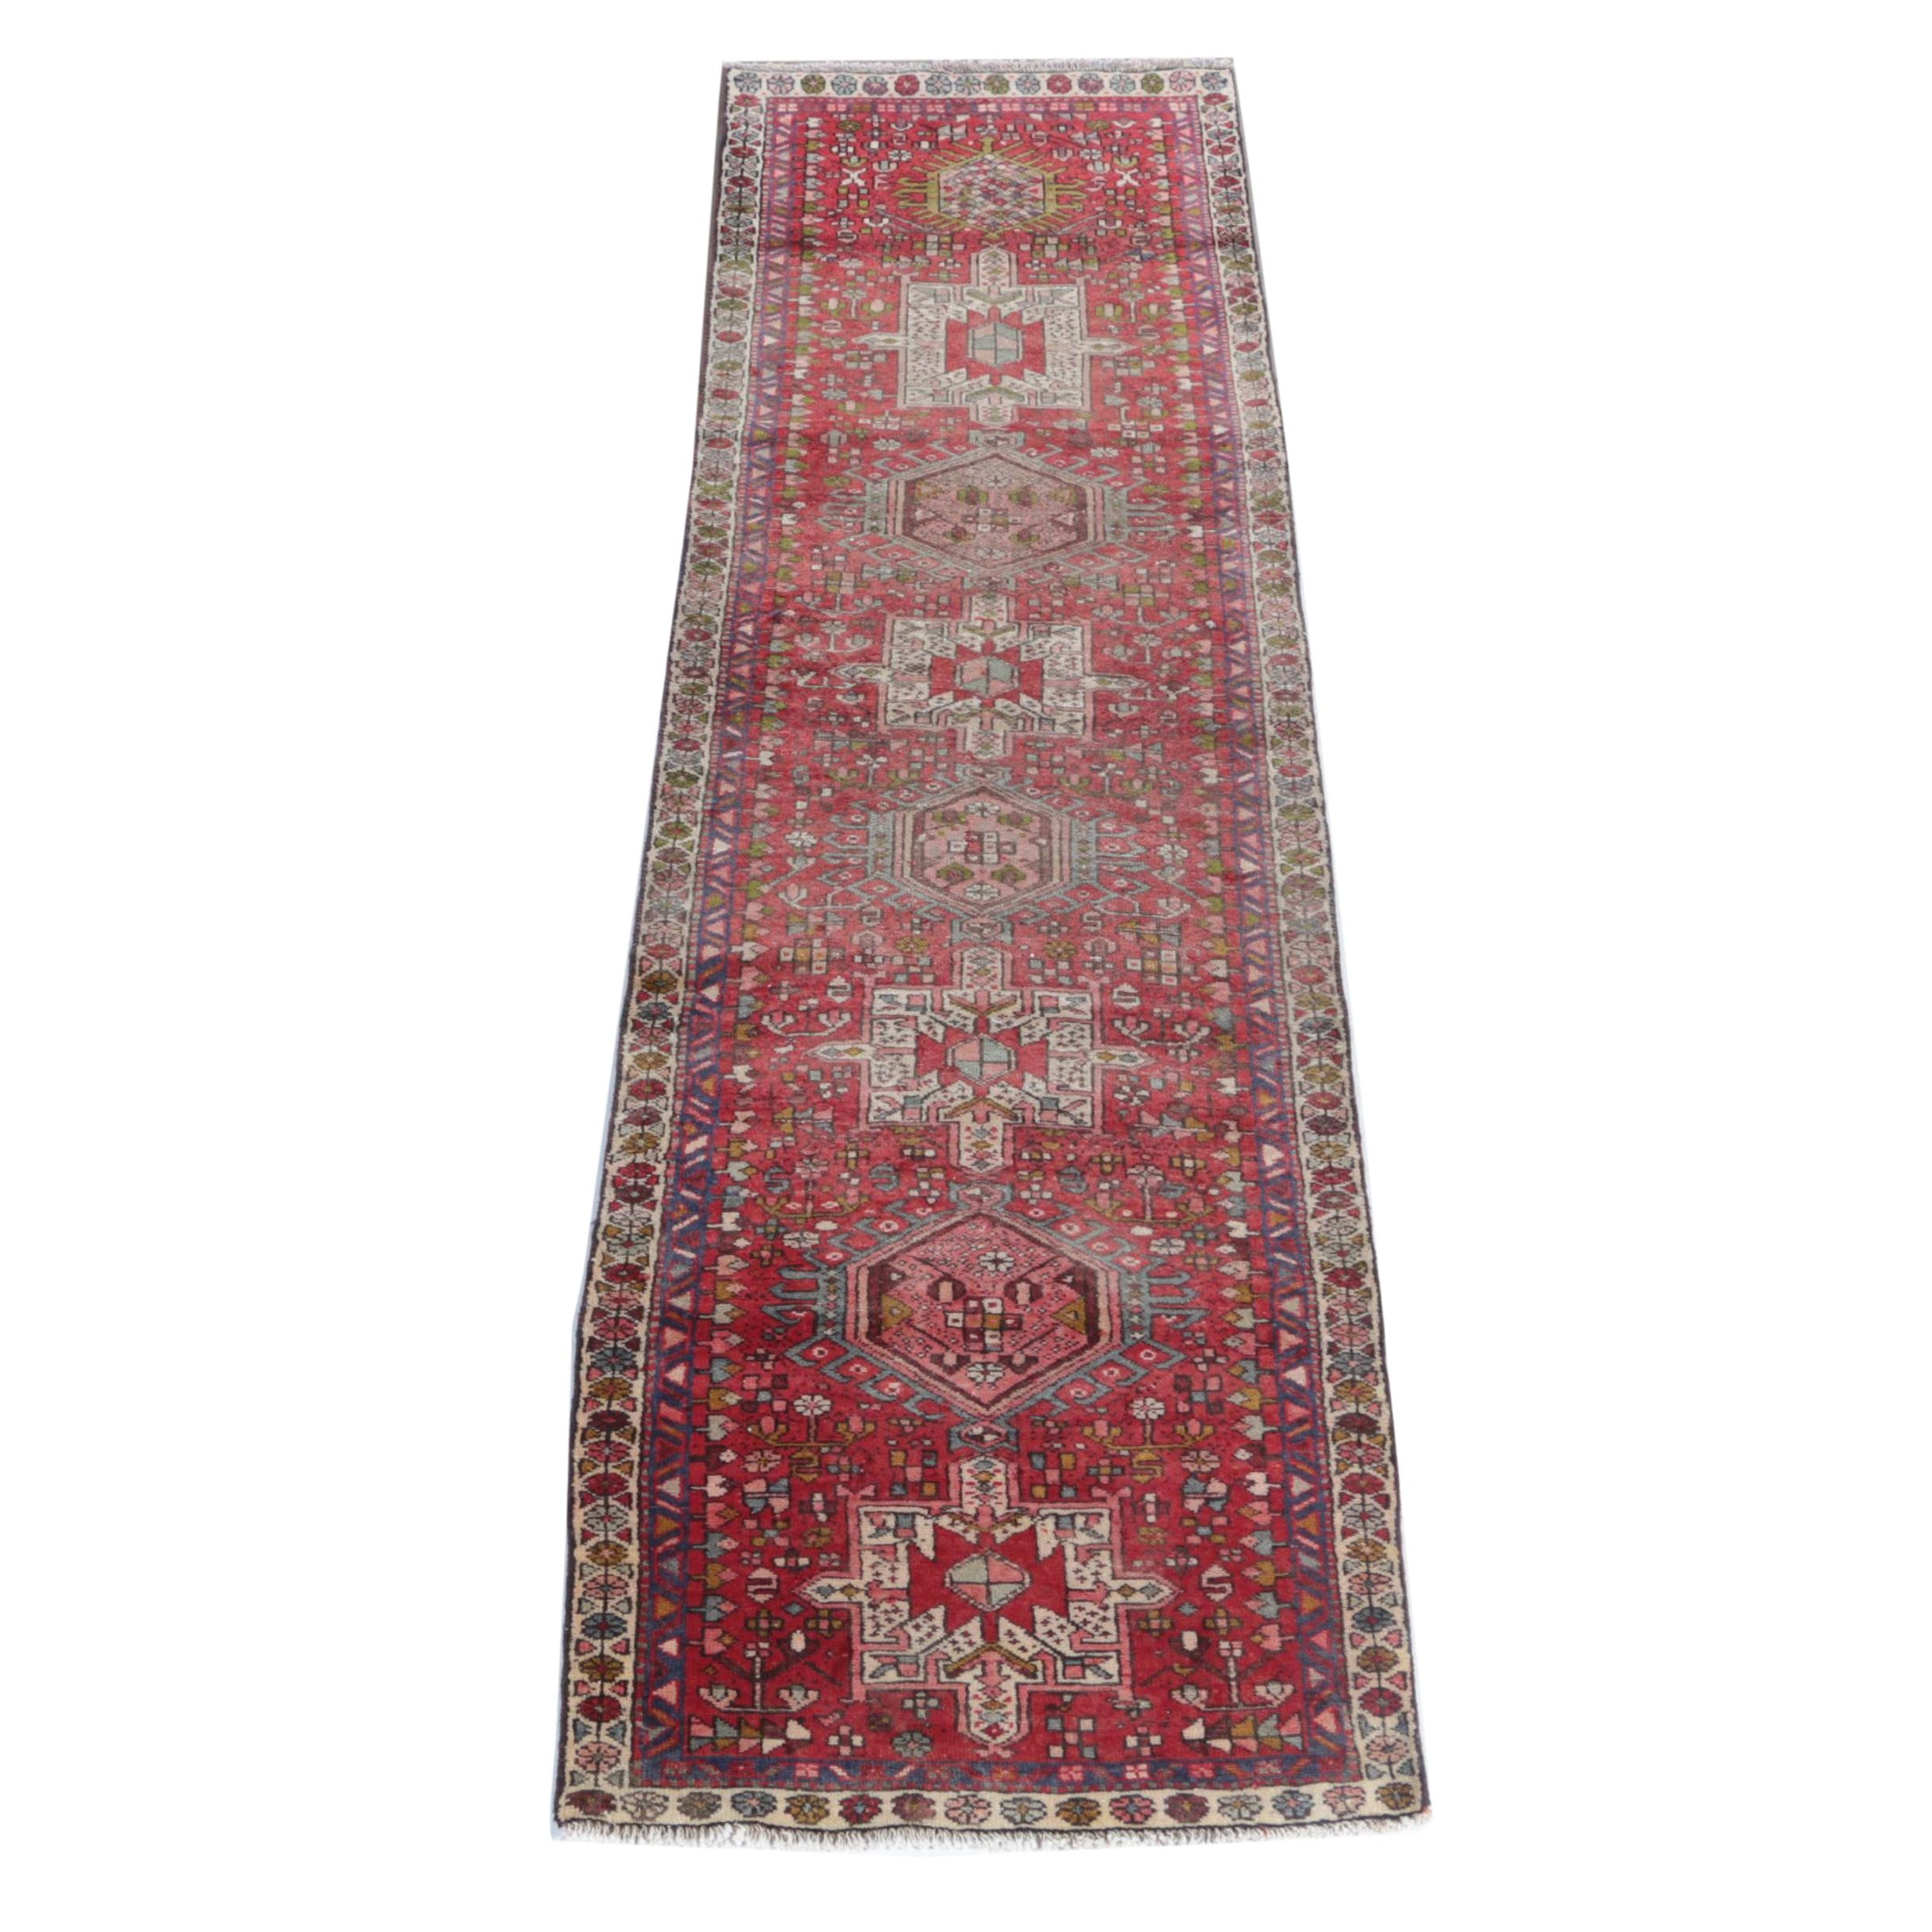 Hand-Knotted Persian Karaja Carpet Runner